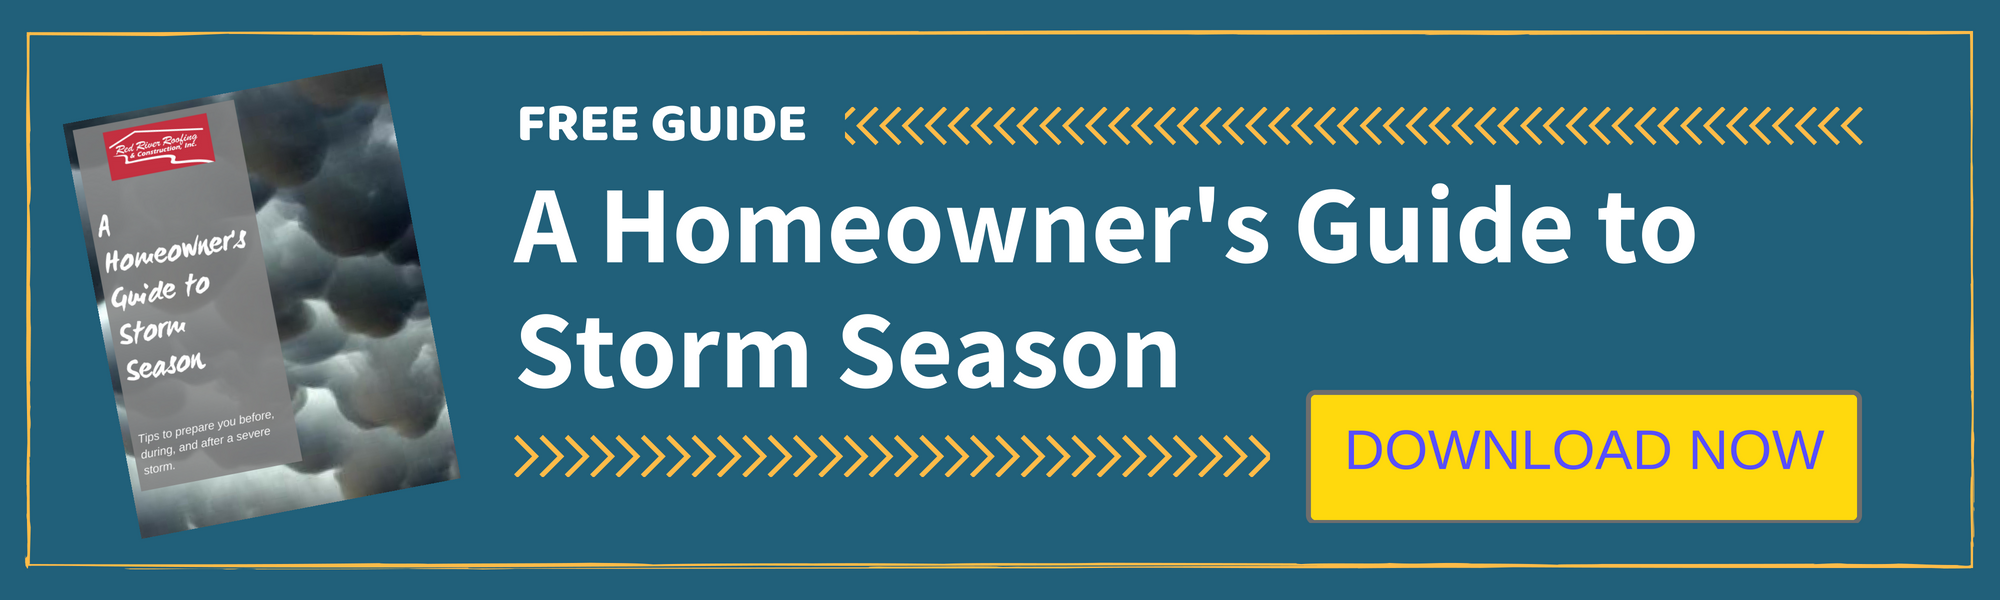 Storm Season Guide Form Download